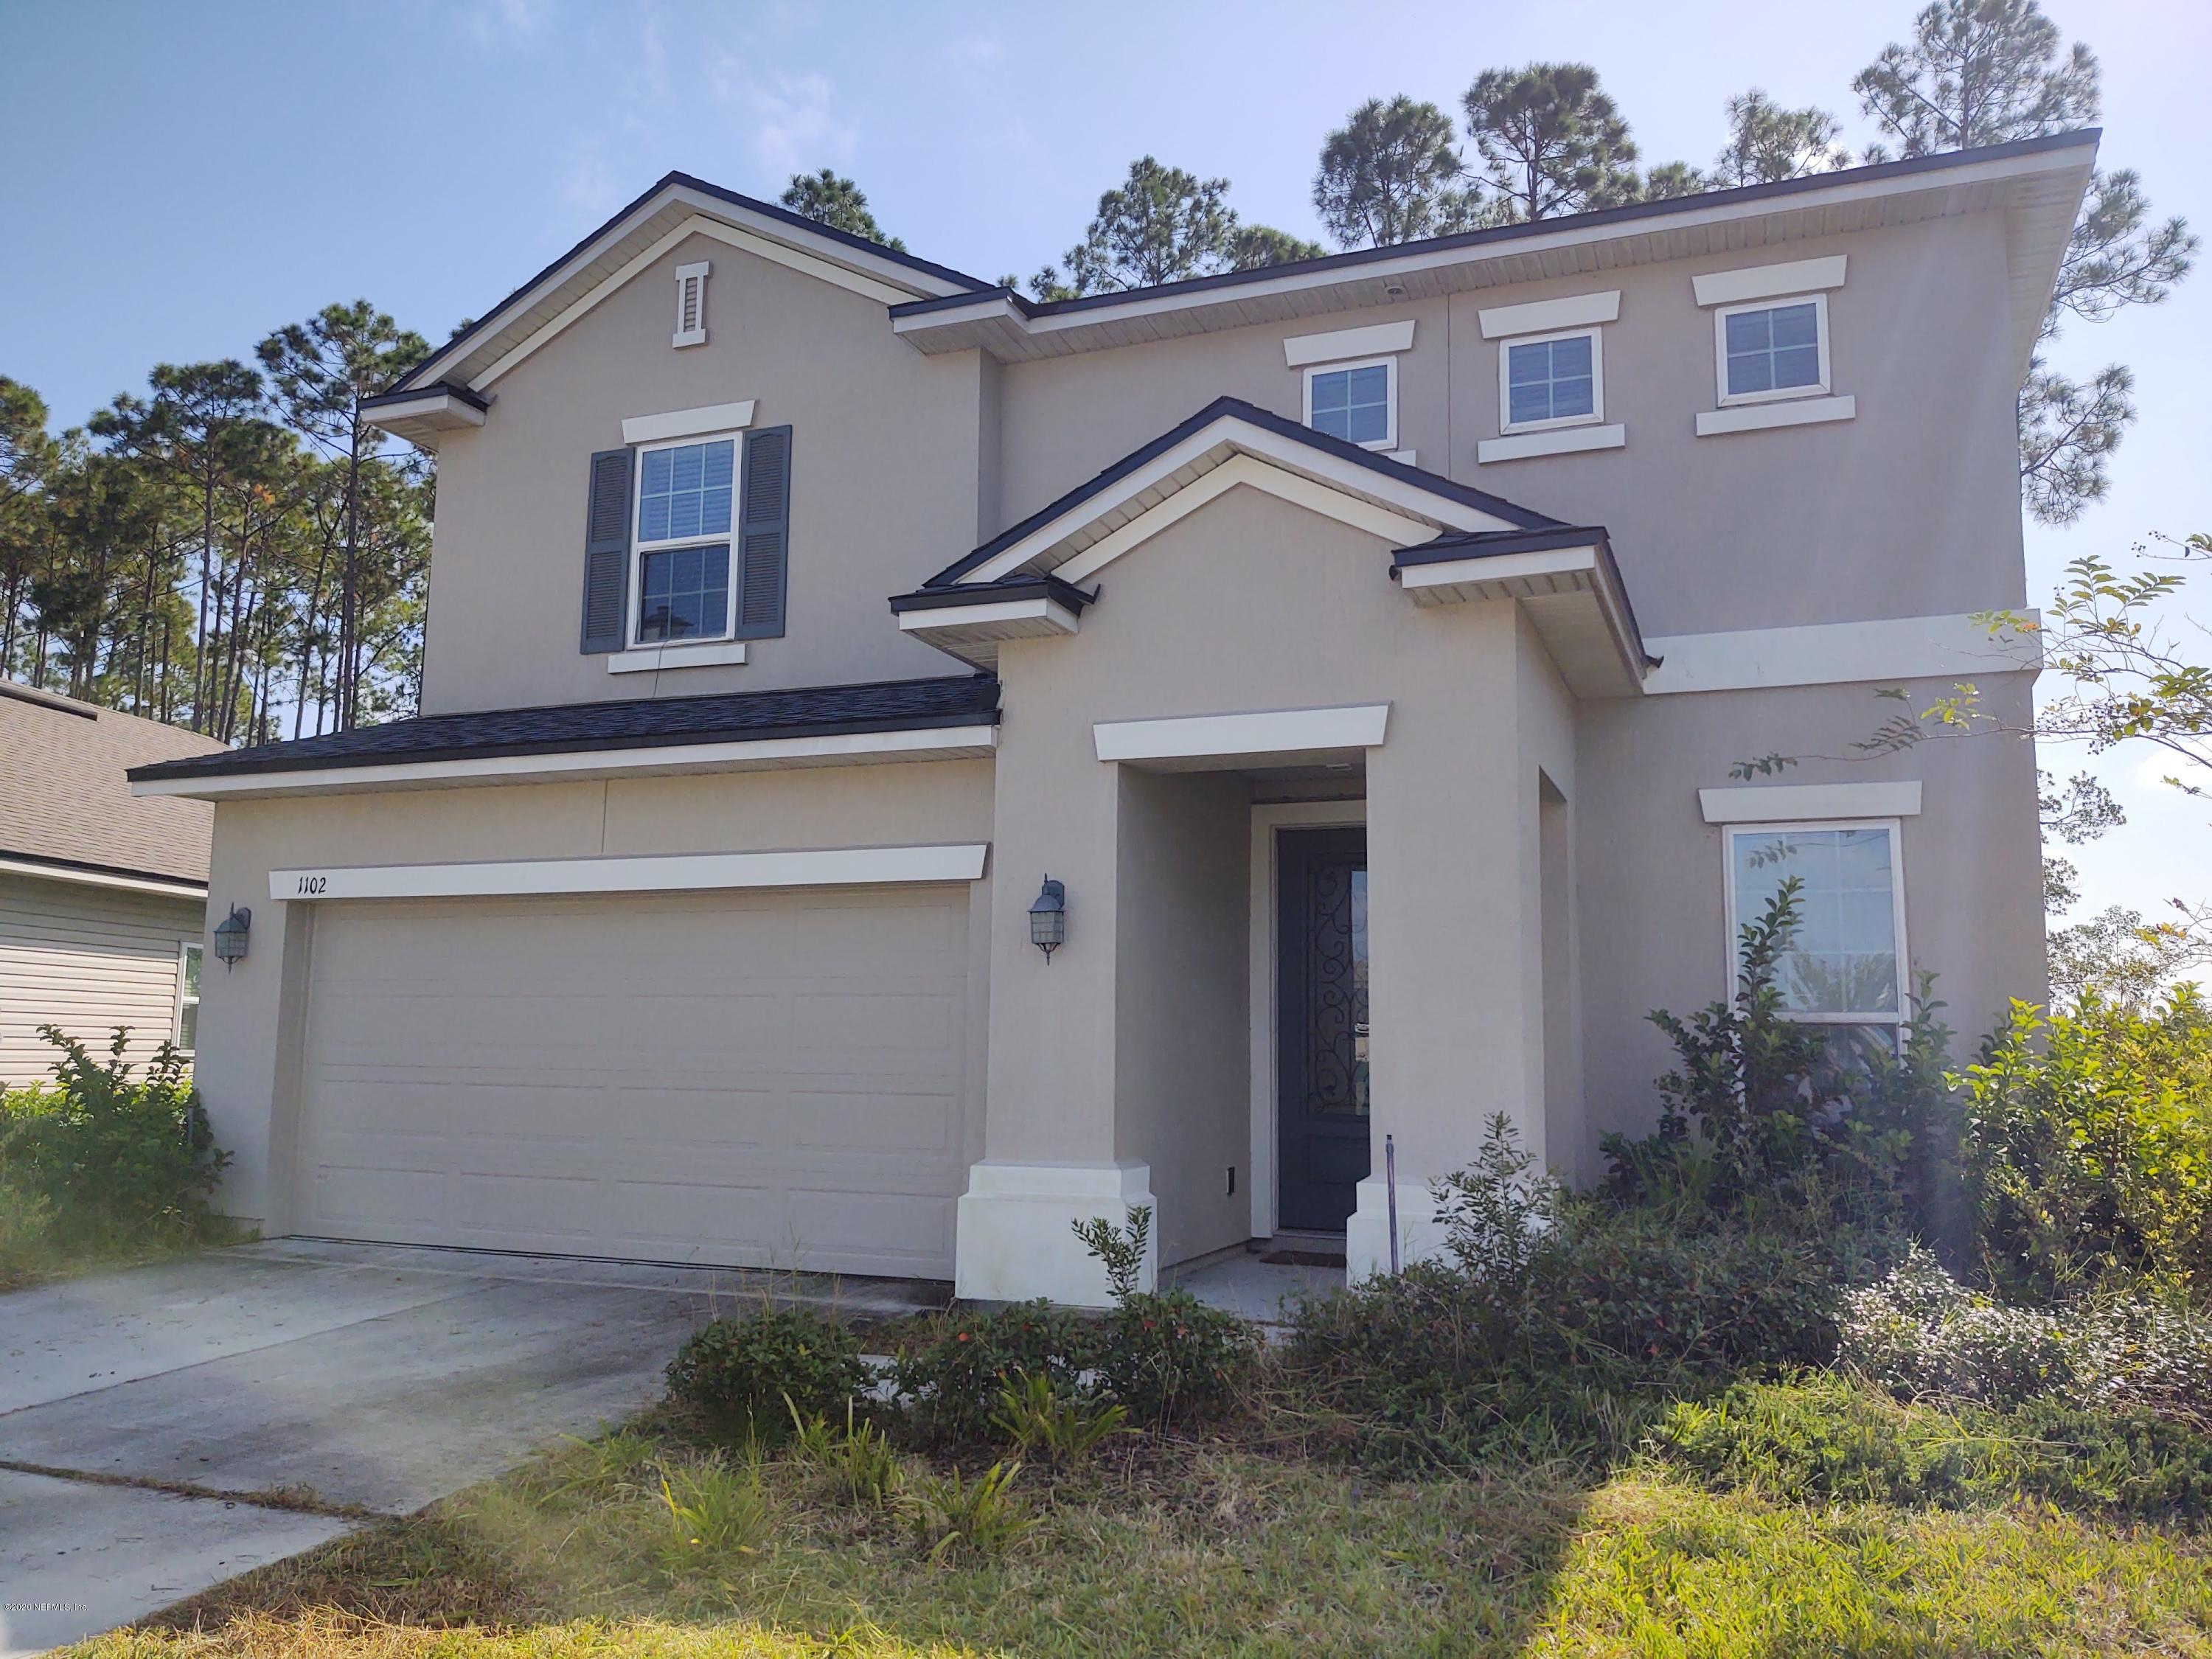 Details for 1102 Wetland Ridge Cir, MIDDLEBURG, FL 32068